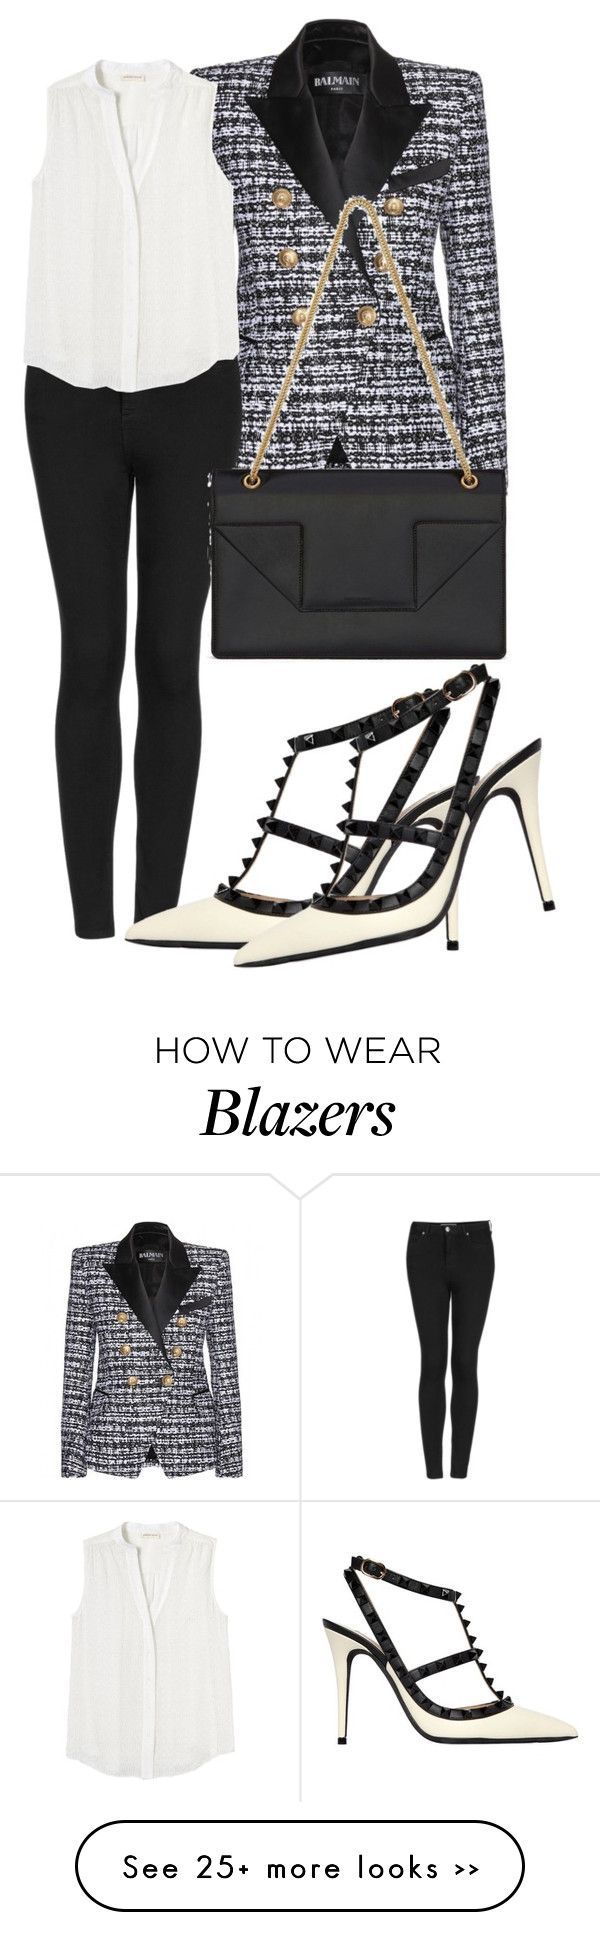 """Untitled #3244"" by madinab on Polyvore"